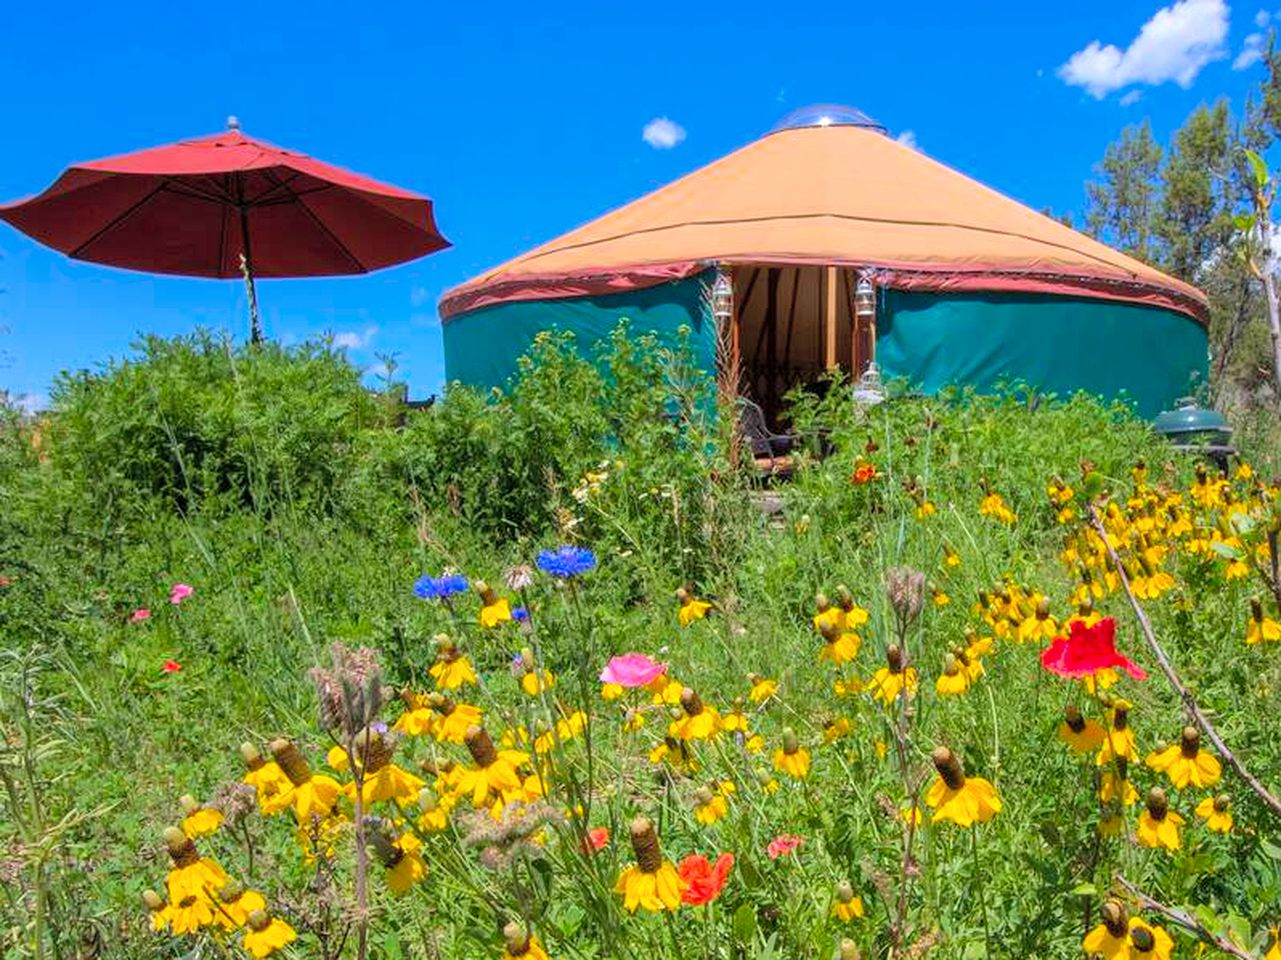 Yurts (Carbondale, Colorado, United States)